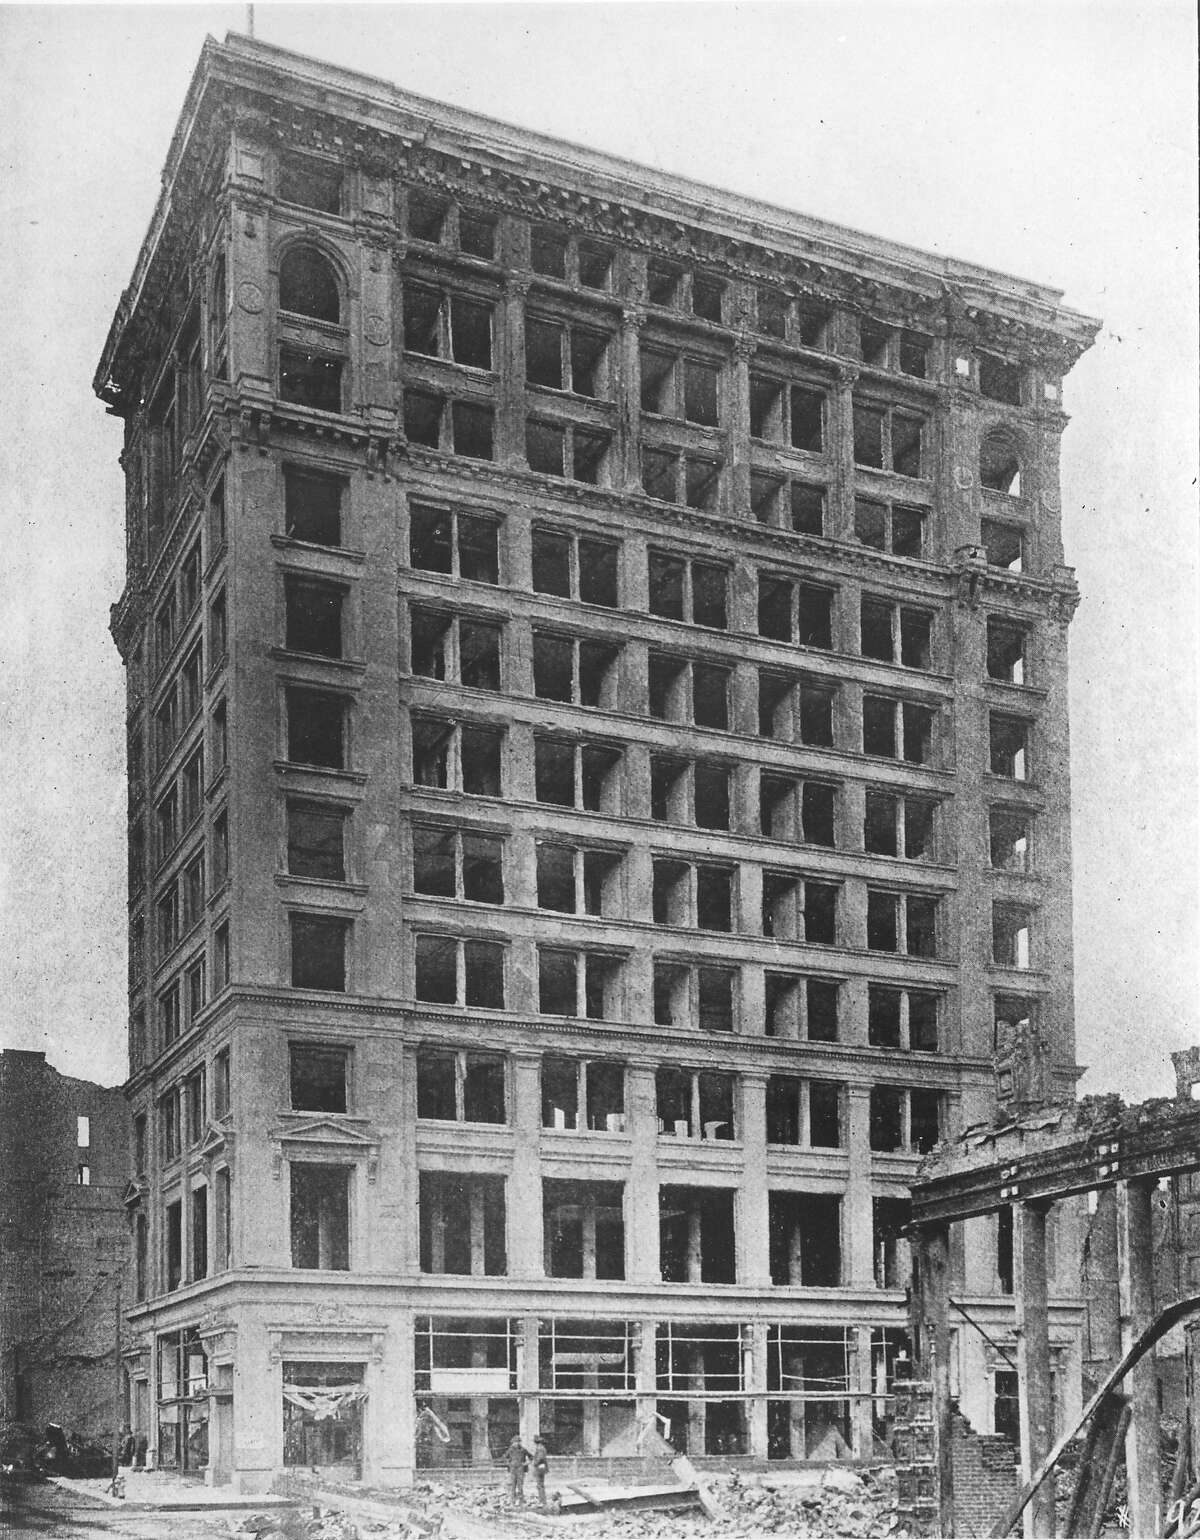 Shreve & Co Jewelers The Shreve Building as it looked immediately after the 1906 earthquake. It had recently built, and the 12-story structural steel frame was undamaged by the intense earthquake. Photo courtesy of Bethlehem Steel Photo dated 04/19/1967